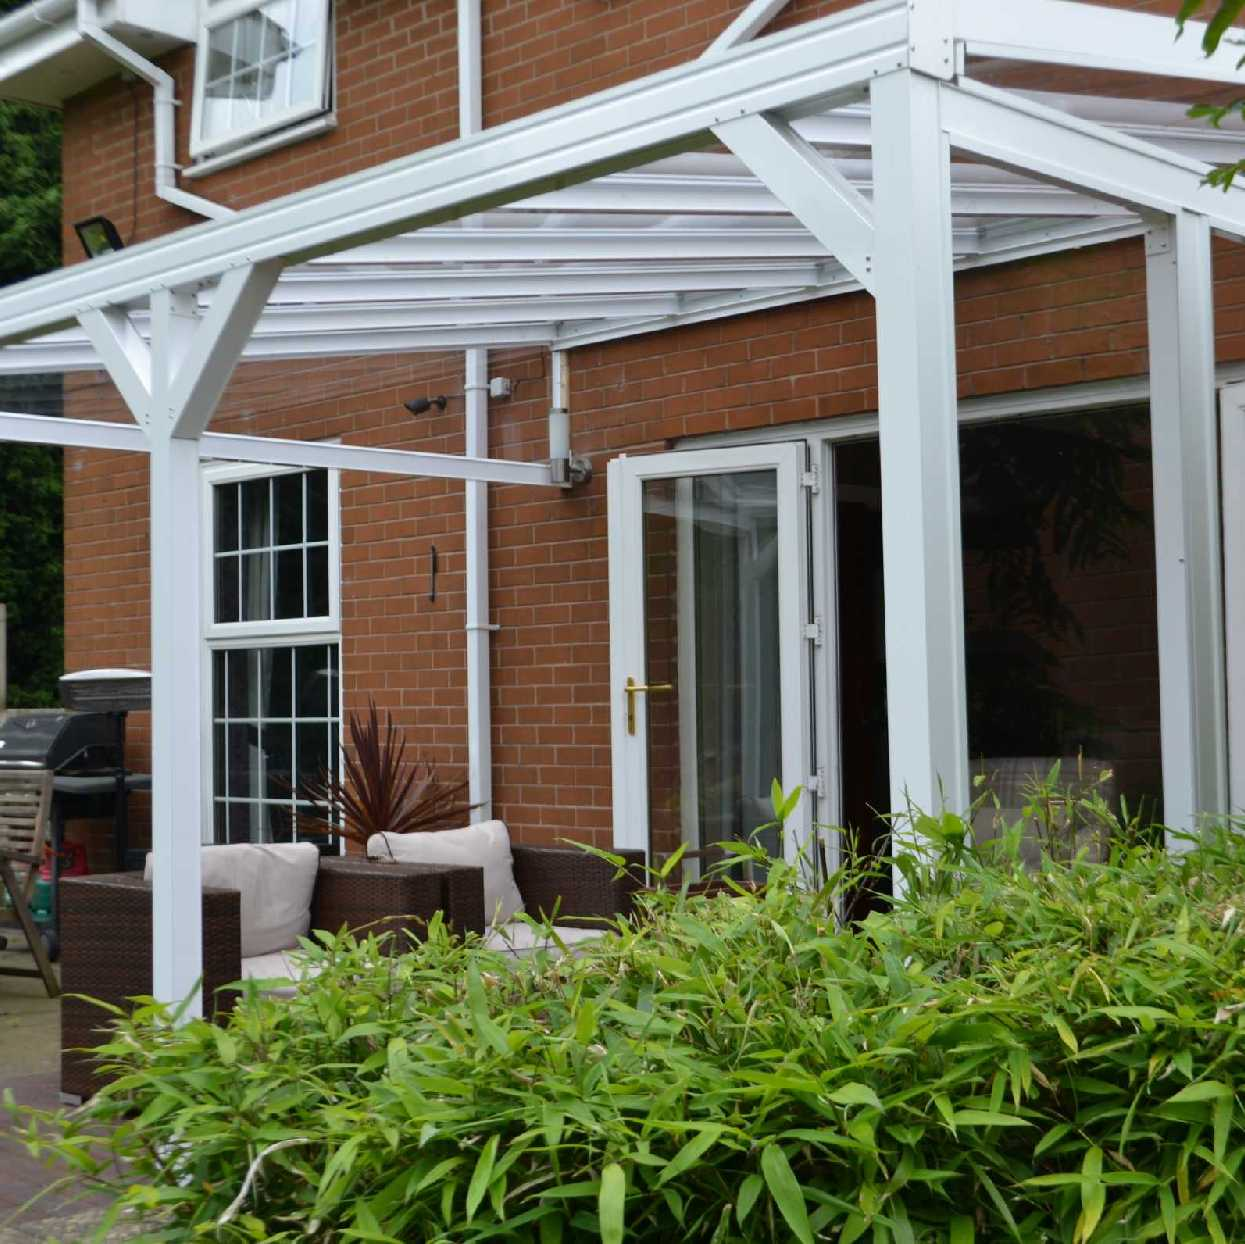 Omega Smart White Lean-To Canopy with 6mm Glass Clear Plate Polycarbonate Glazing - 10.0m (W) x 4.0m (P), (5) Supporting Posts from Omega Build